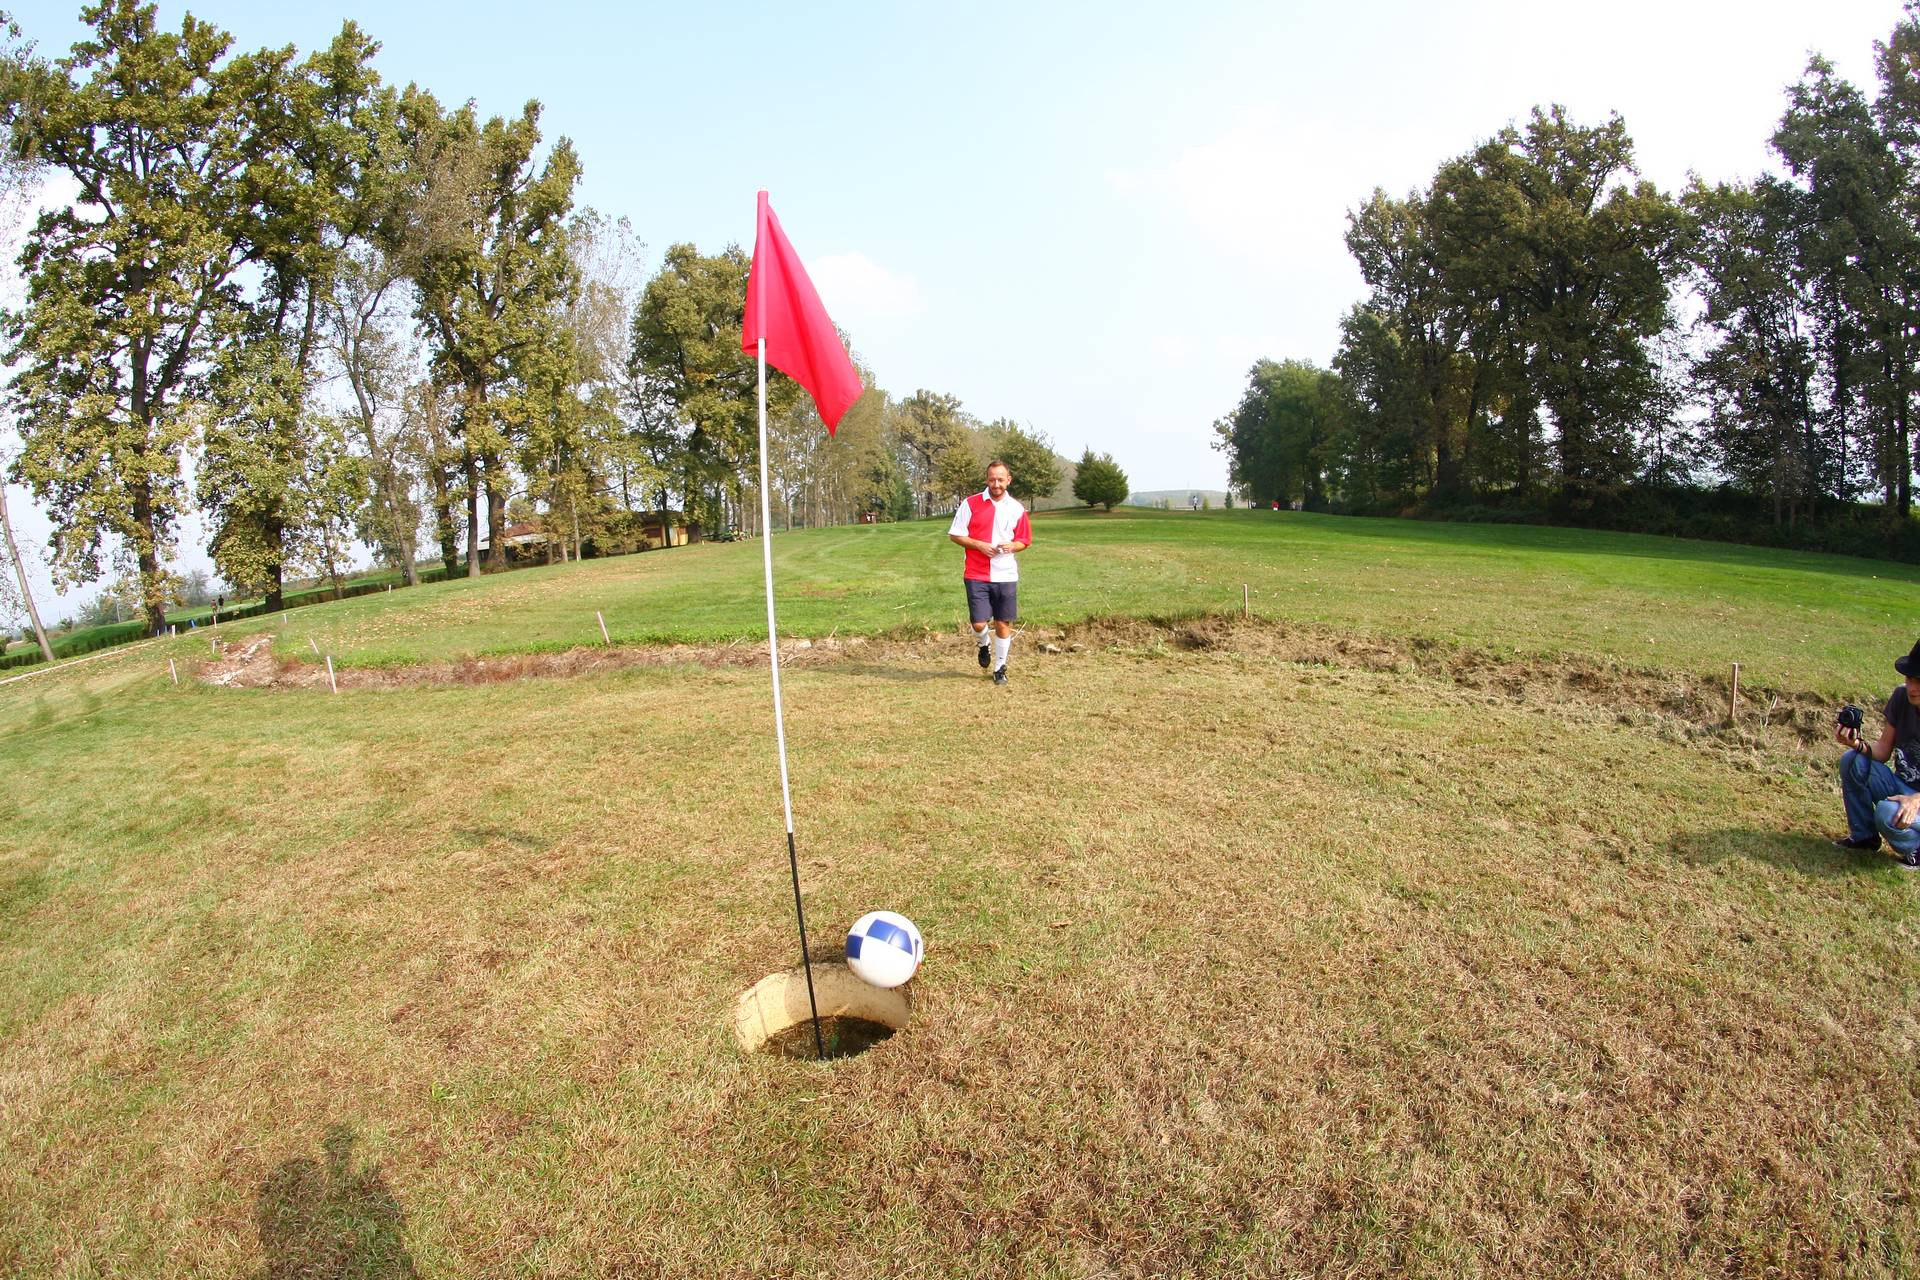 Footgolf, amore a prima vista